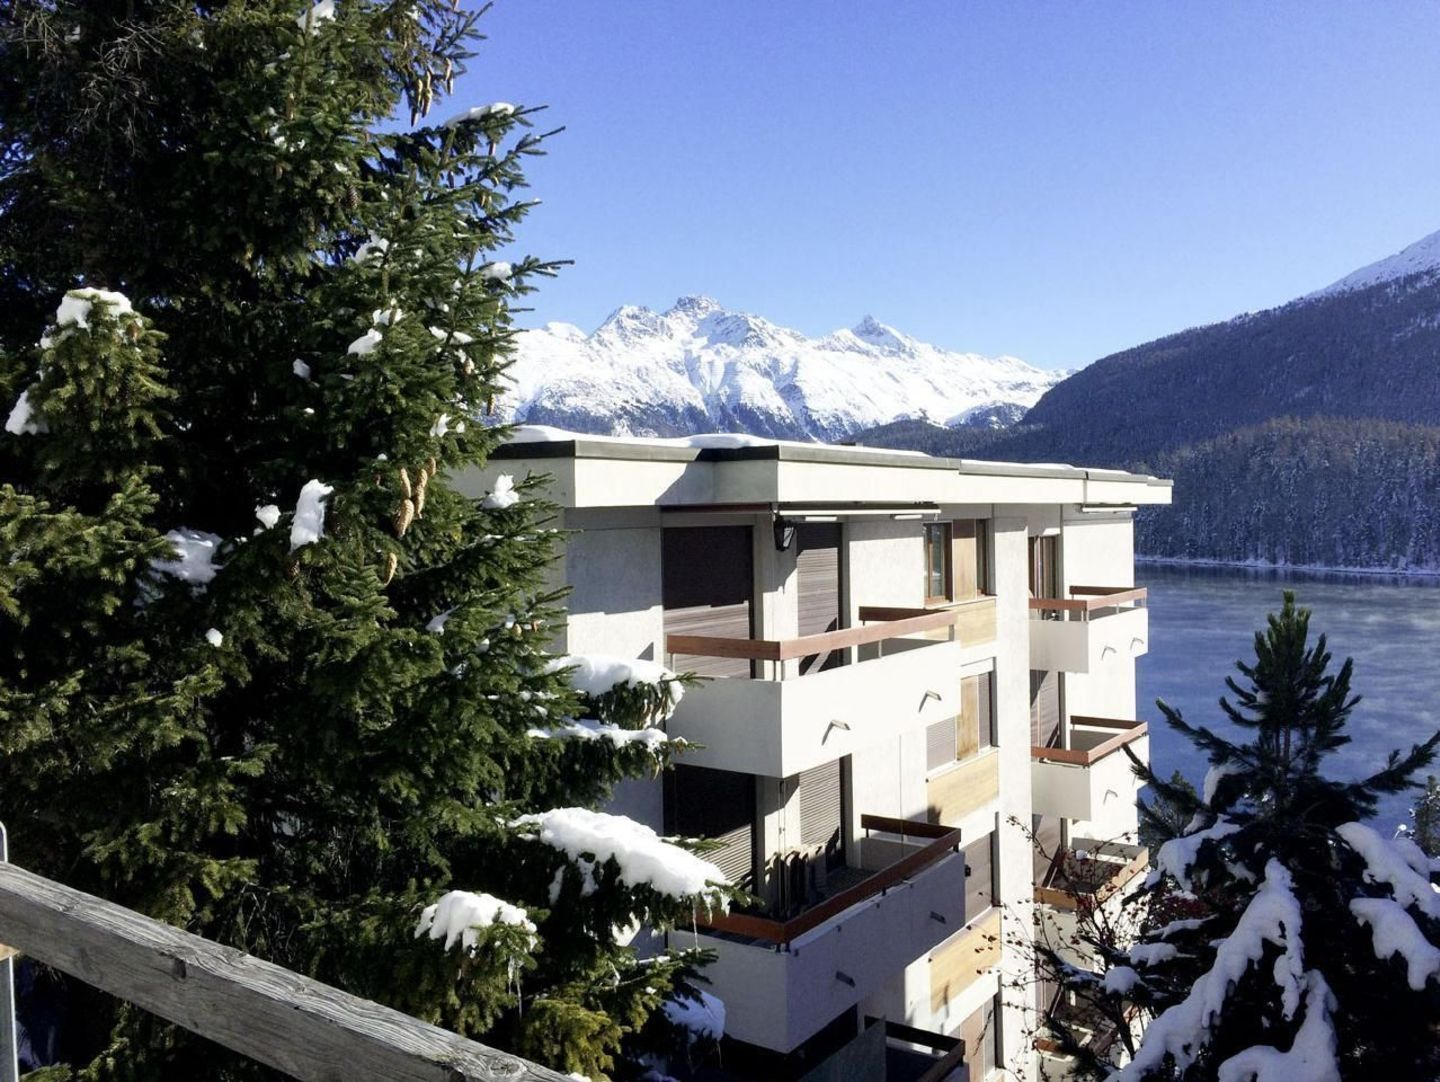 Residence in the lovely village of St. Moritz